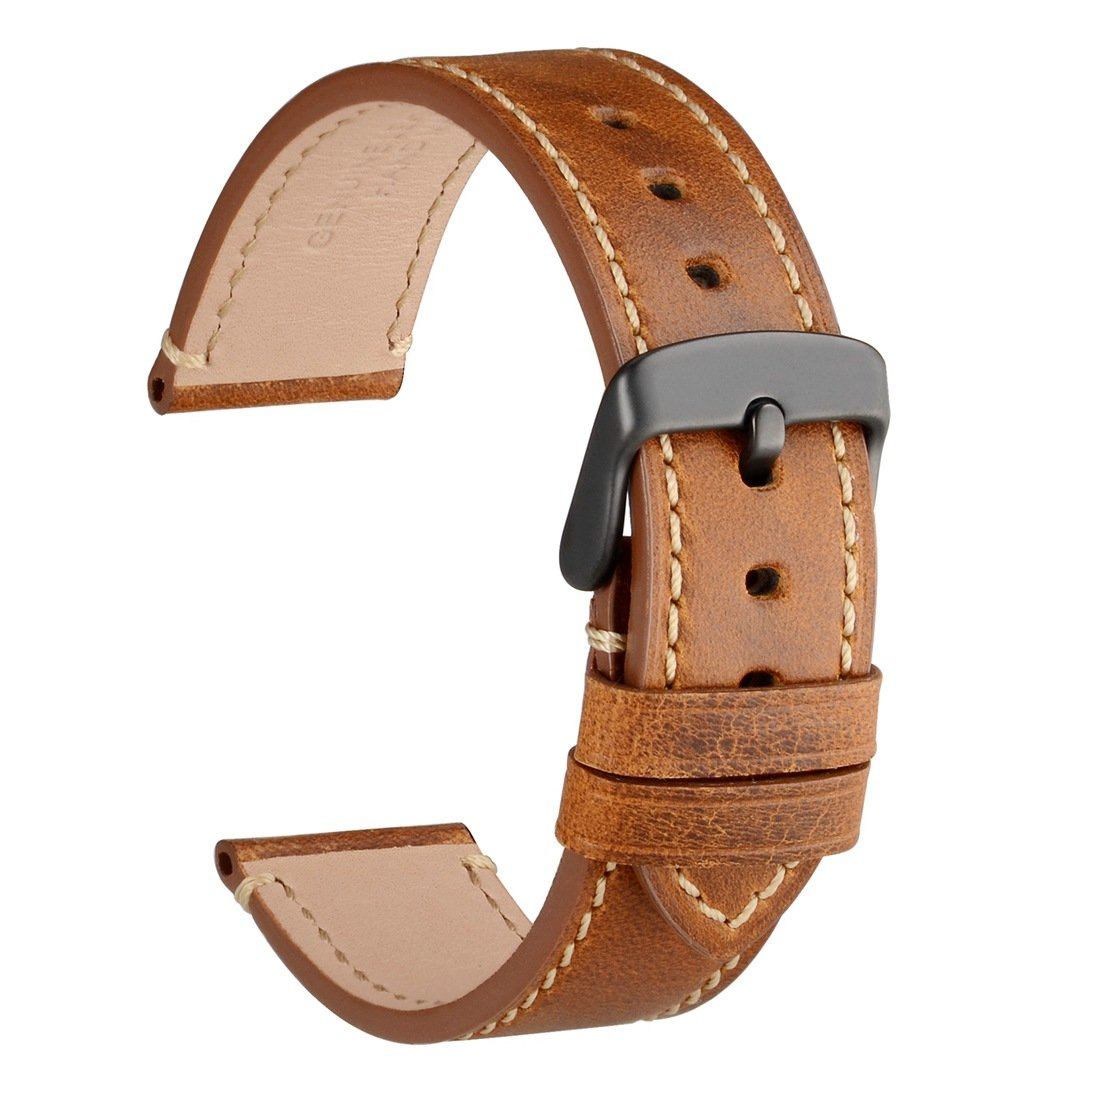 WOCCI 20mm Watch Bands - Saddle Style Vintage Leather Strap with Black Buckle - Belt Color (Gold Brown)